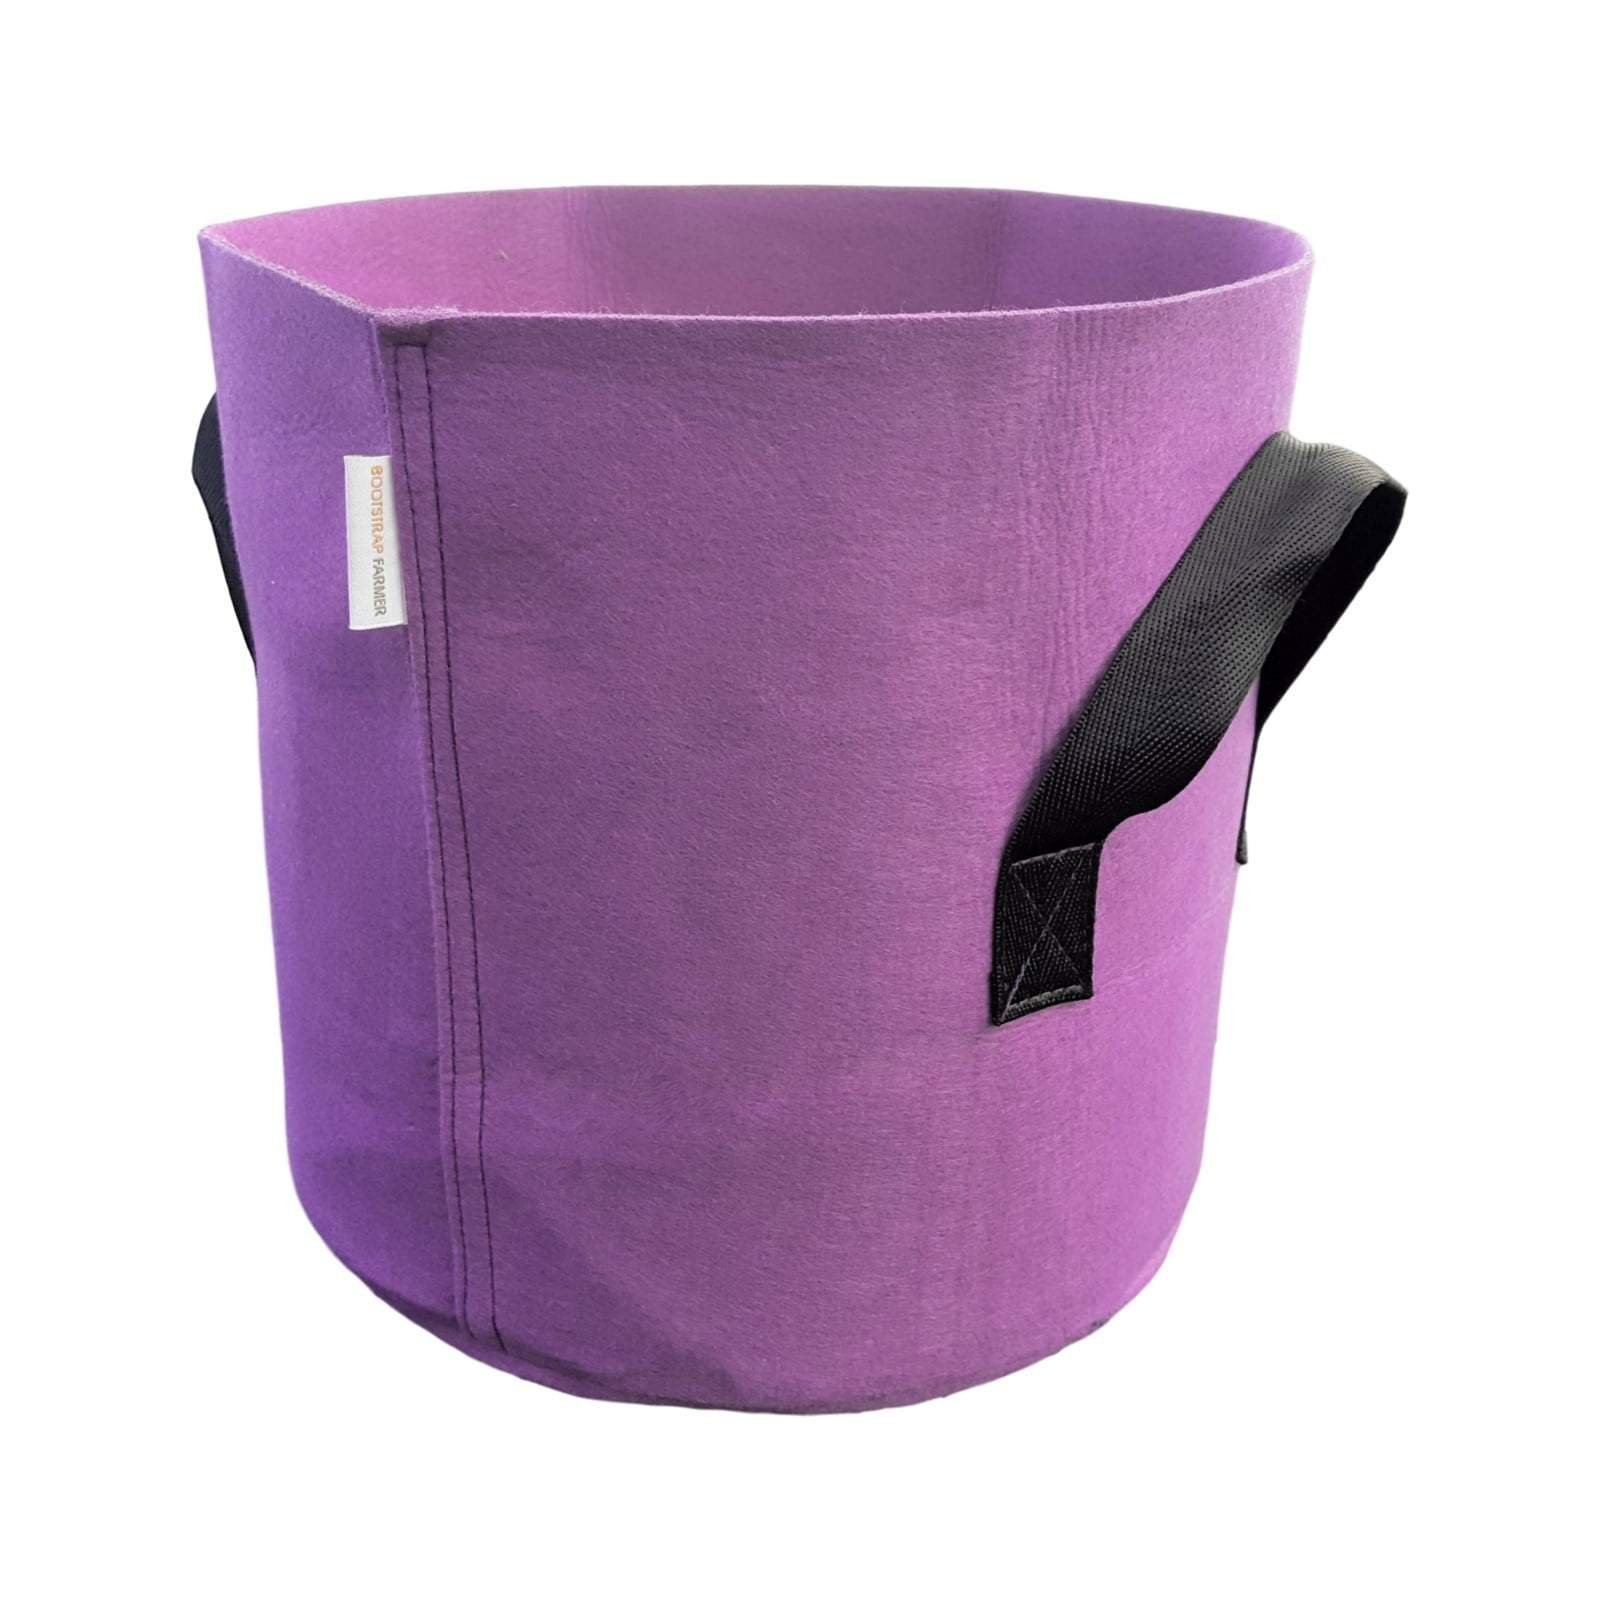 Grow Bags 7 Gallon Variety 100 Pack Colored Fabric Pot for Peppers, Potatoes, Tomatoes and Plants by Bootstrap Farmer